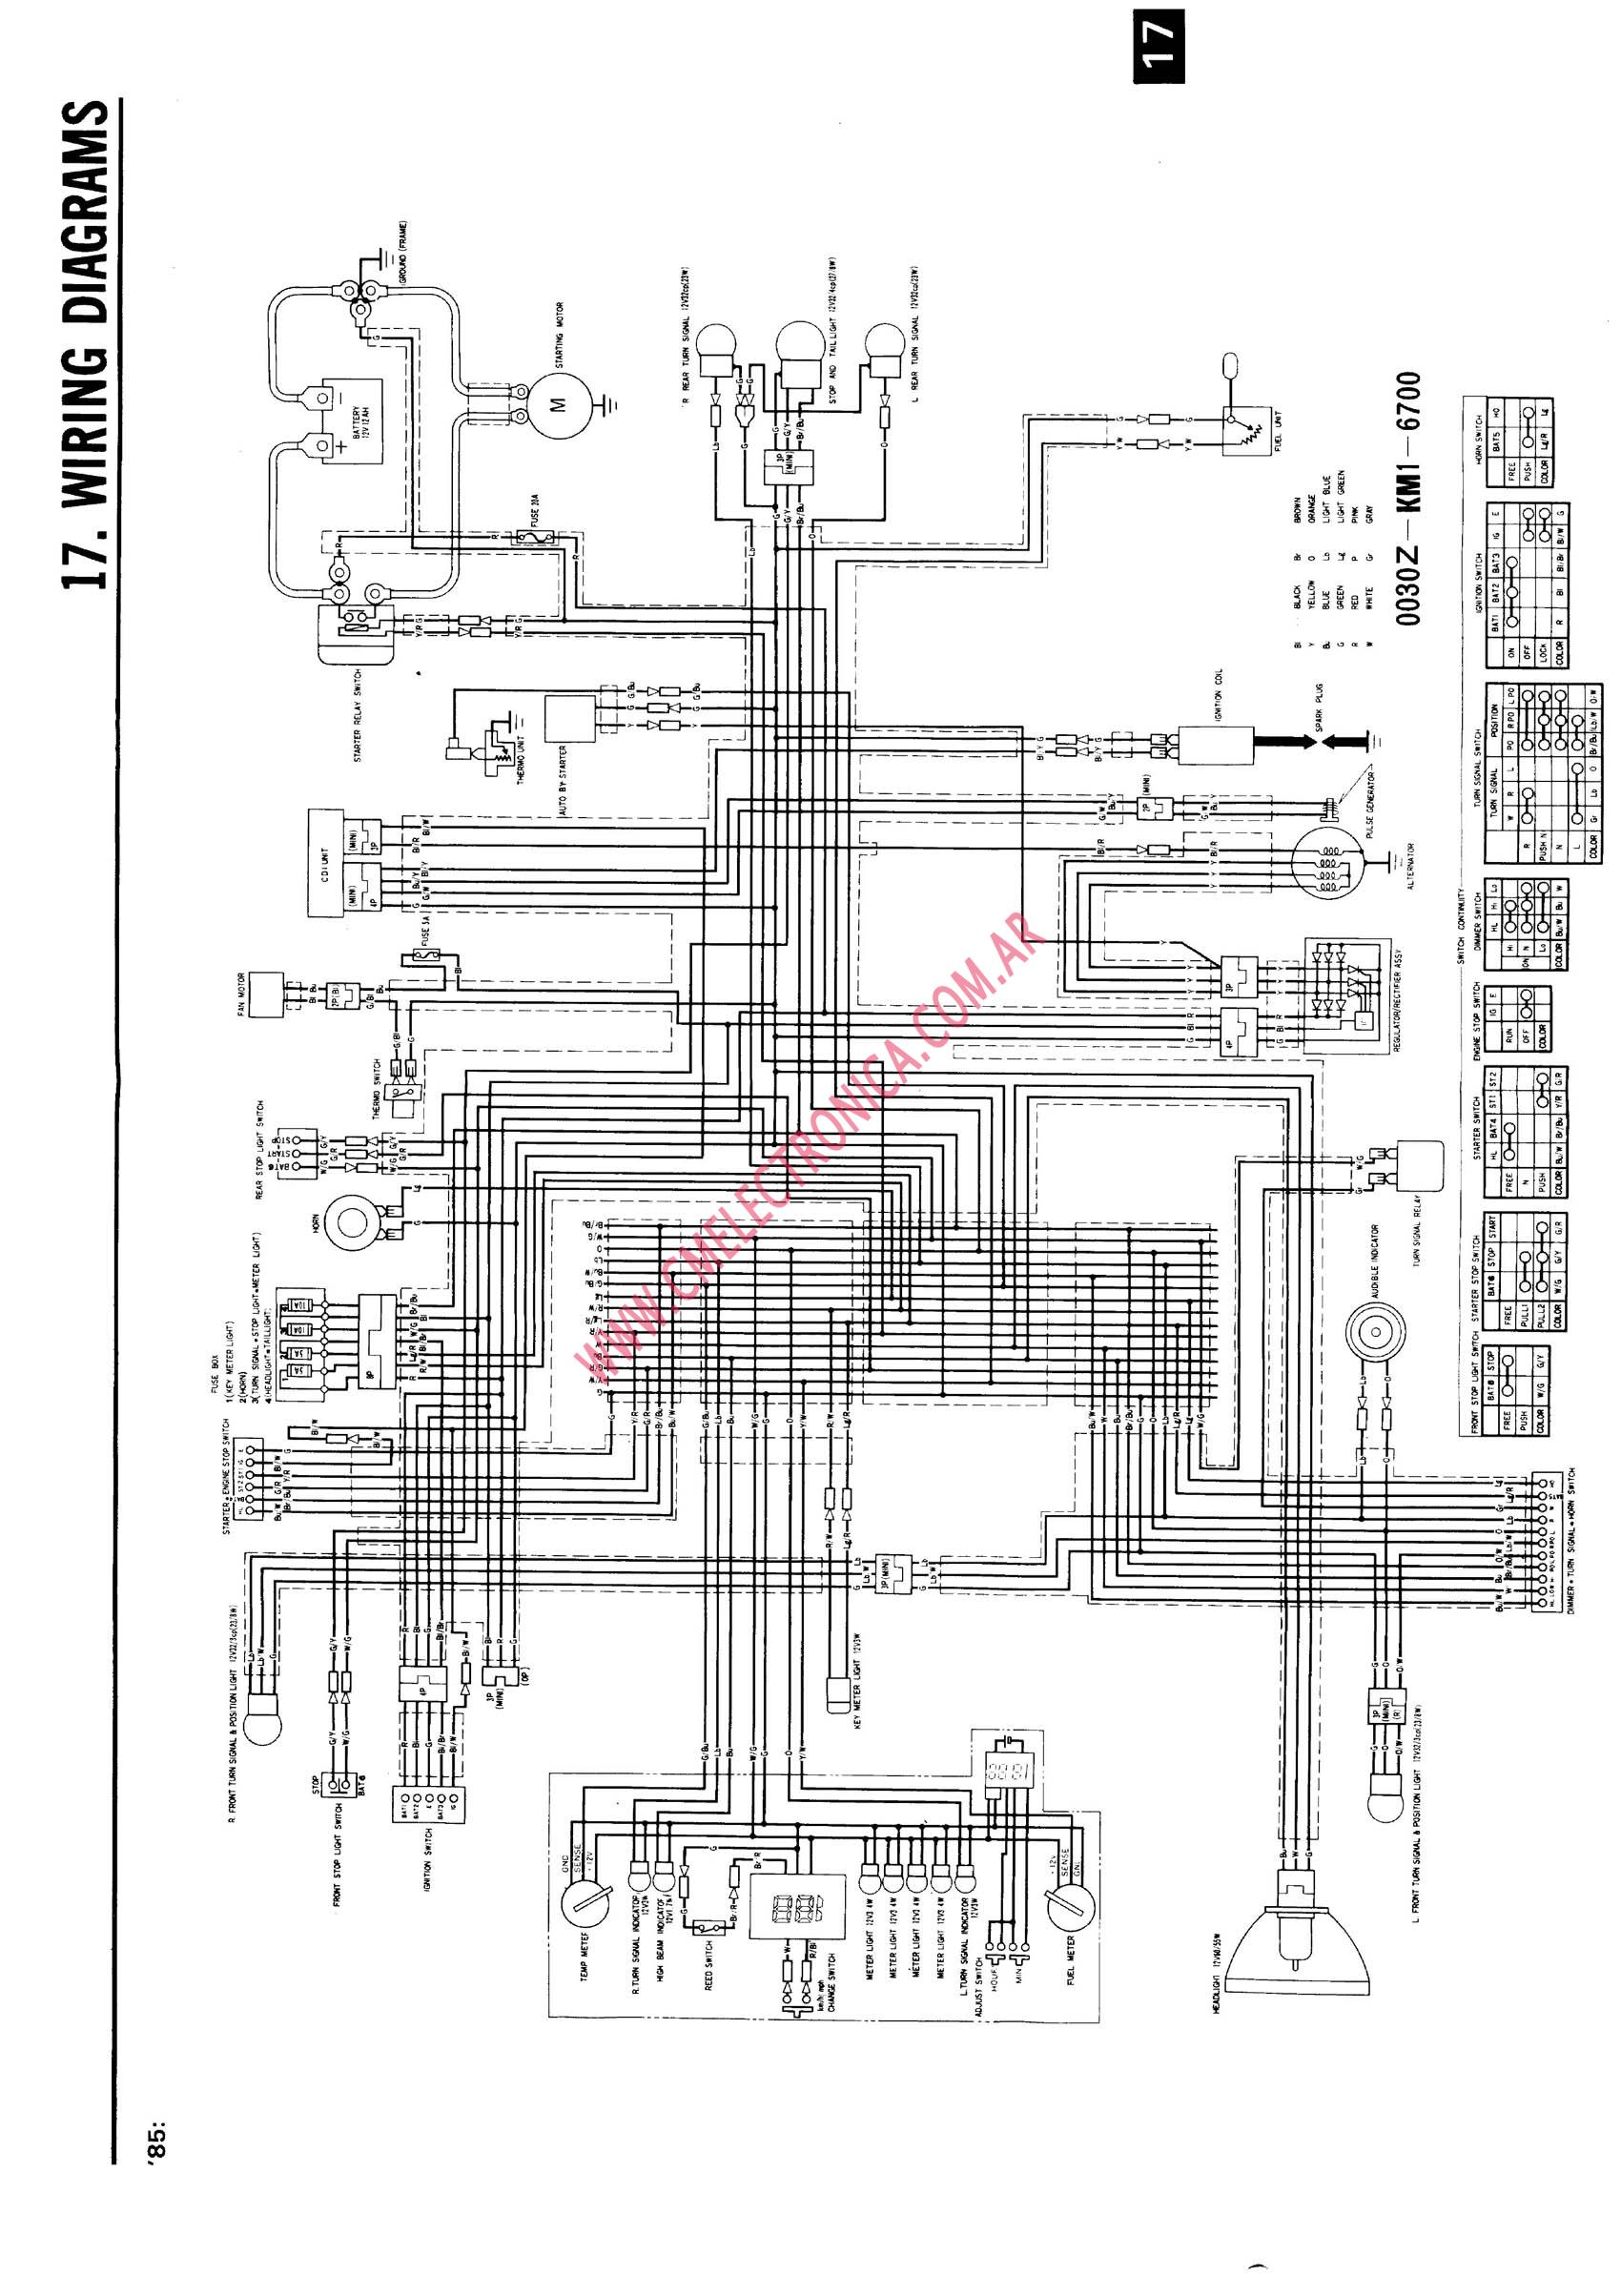 honda ch250 elite elet ac wiring diagram honda wiring diagrams instruction grote 48272 wiring diagram at mifinder.co